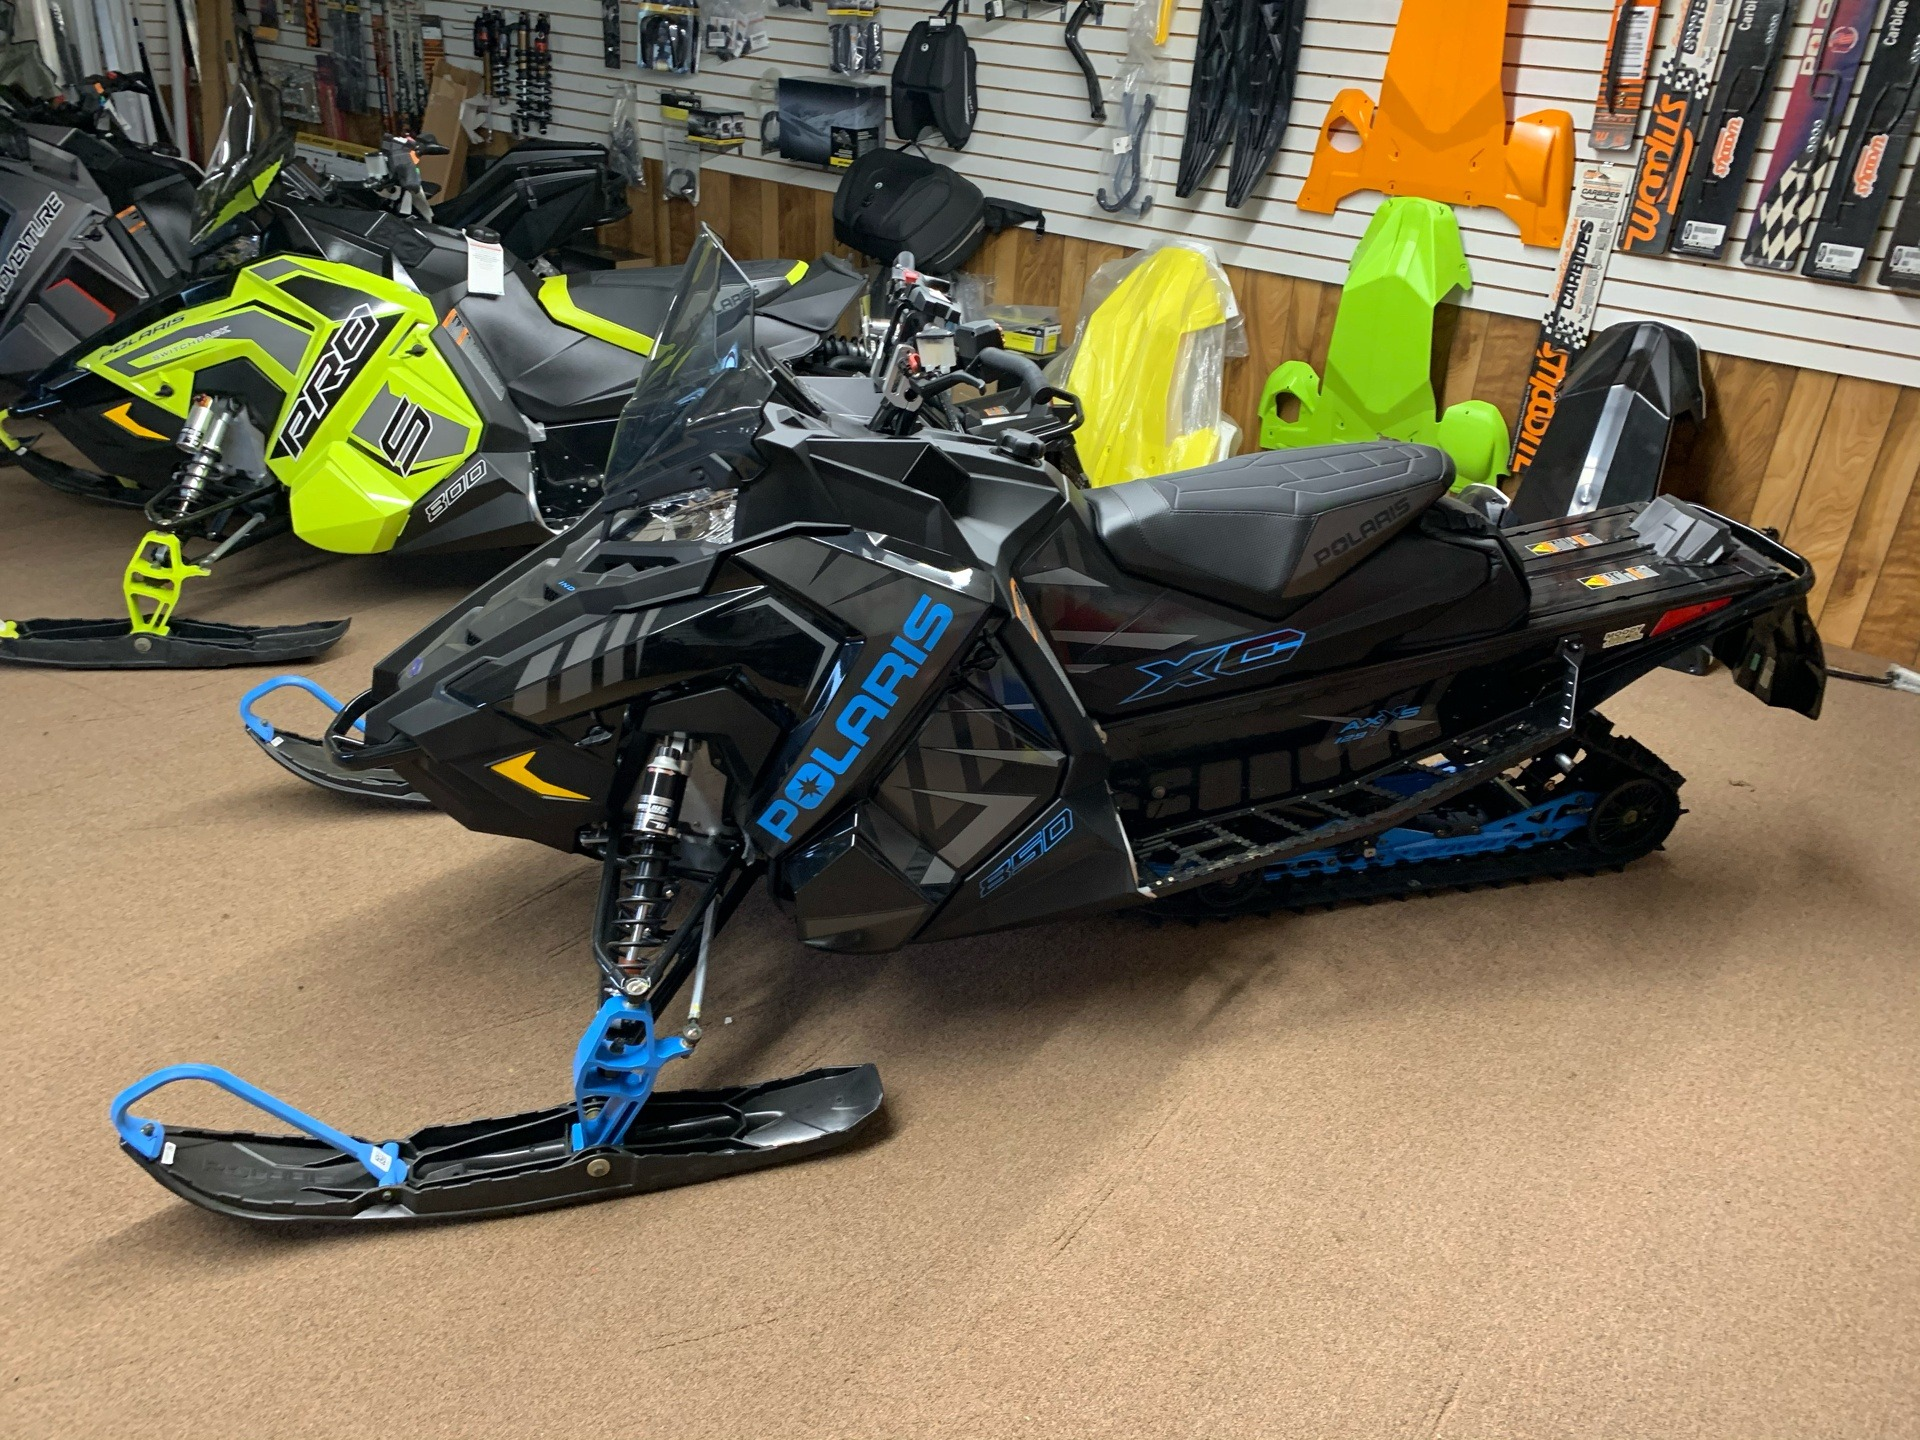 2020 Polaris 850 Indy XC 129 SC in Mars, Pennsylvania - Photo 3